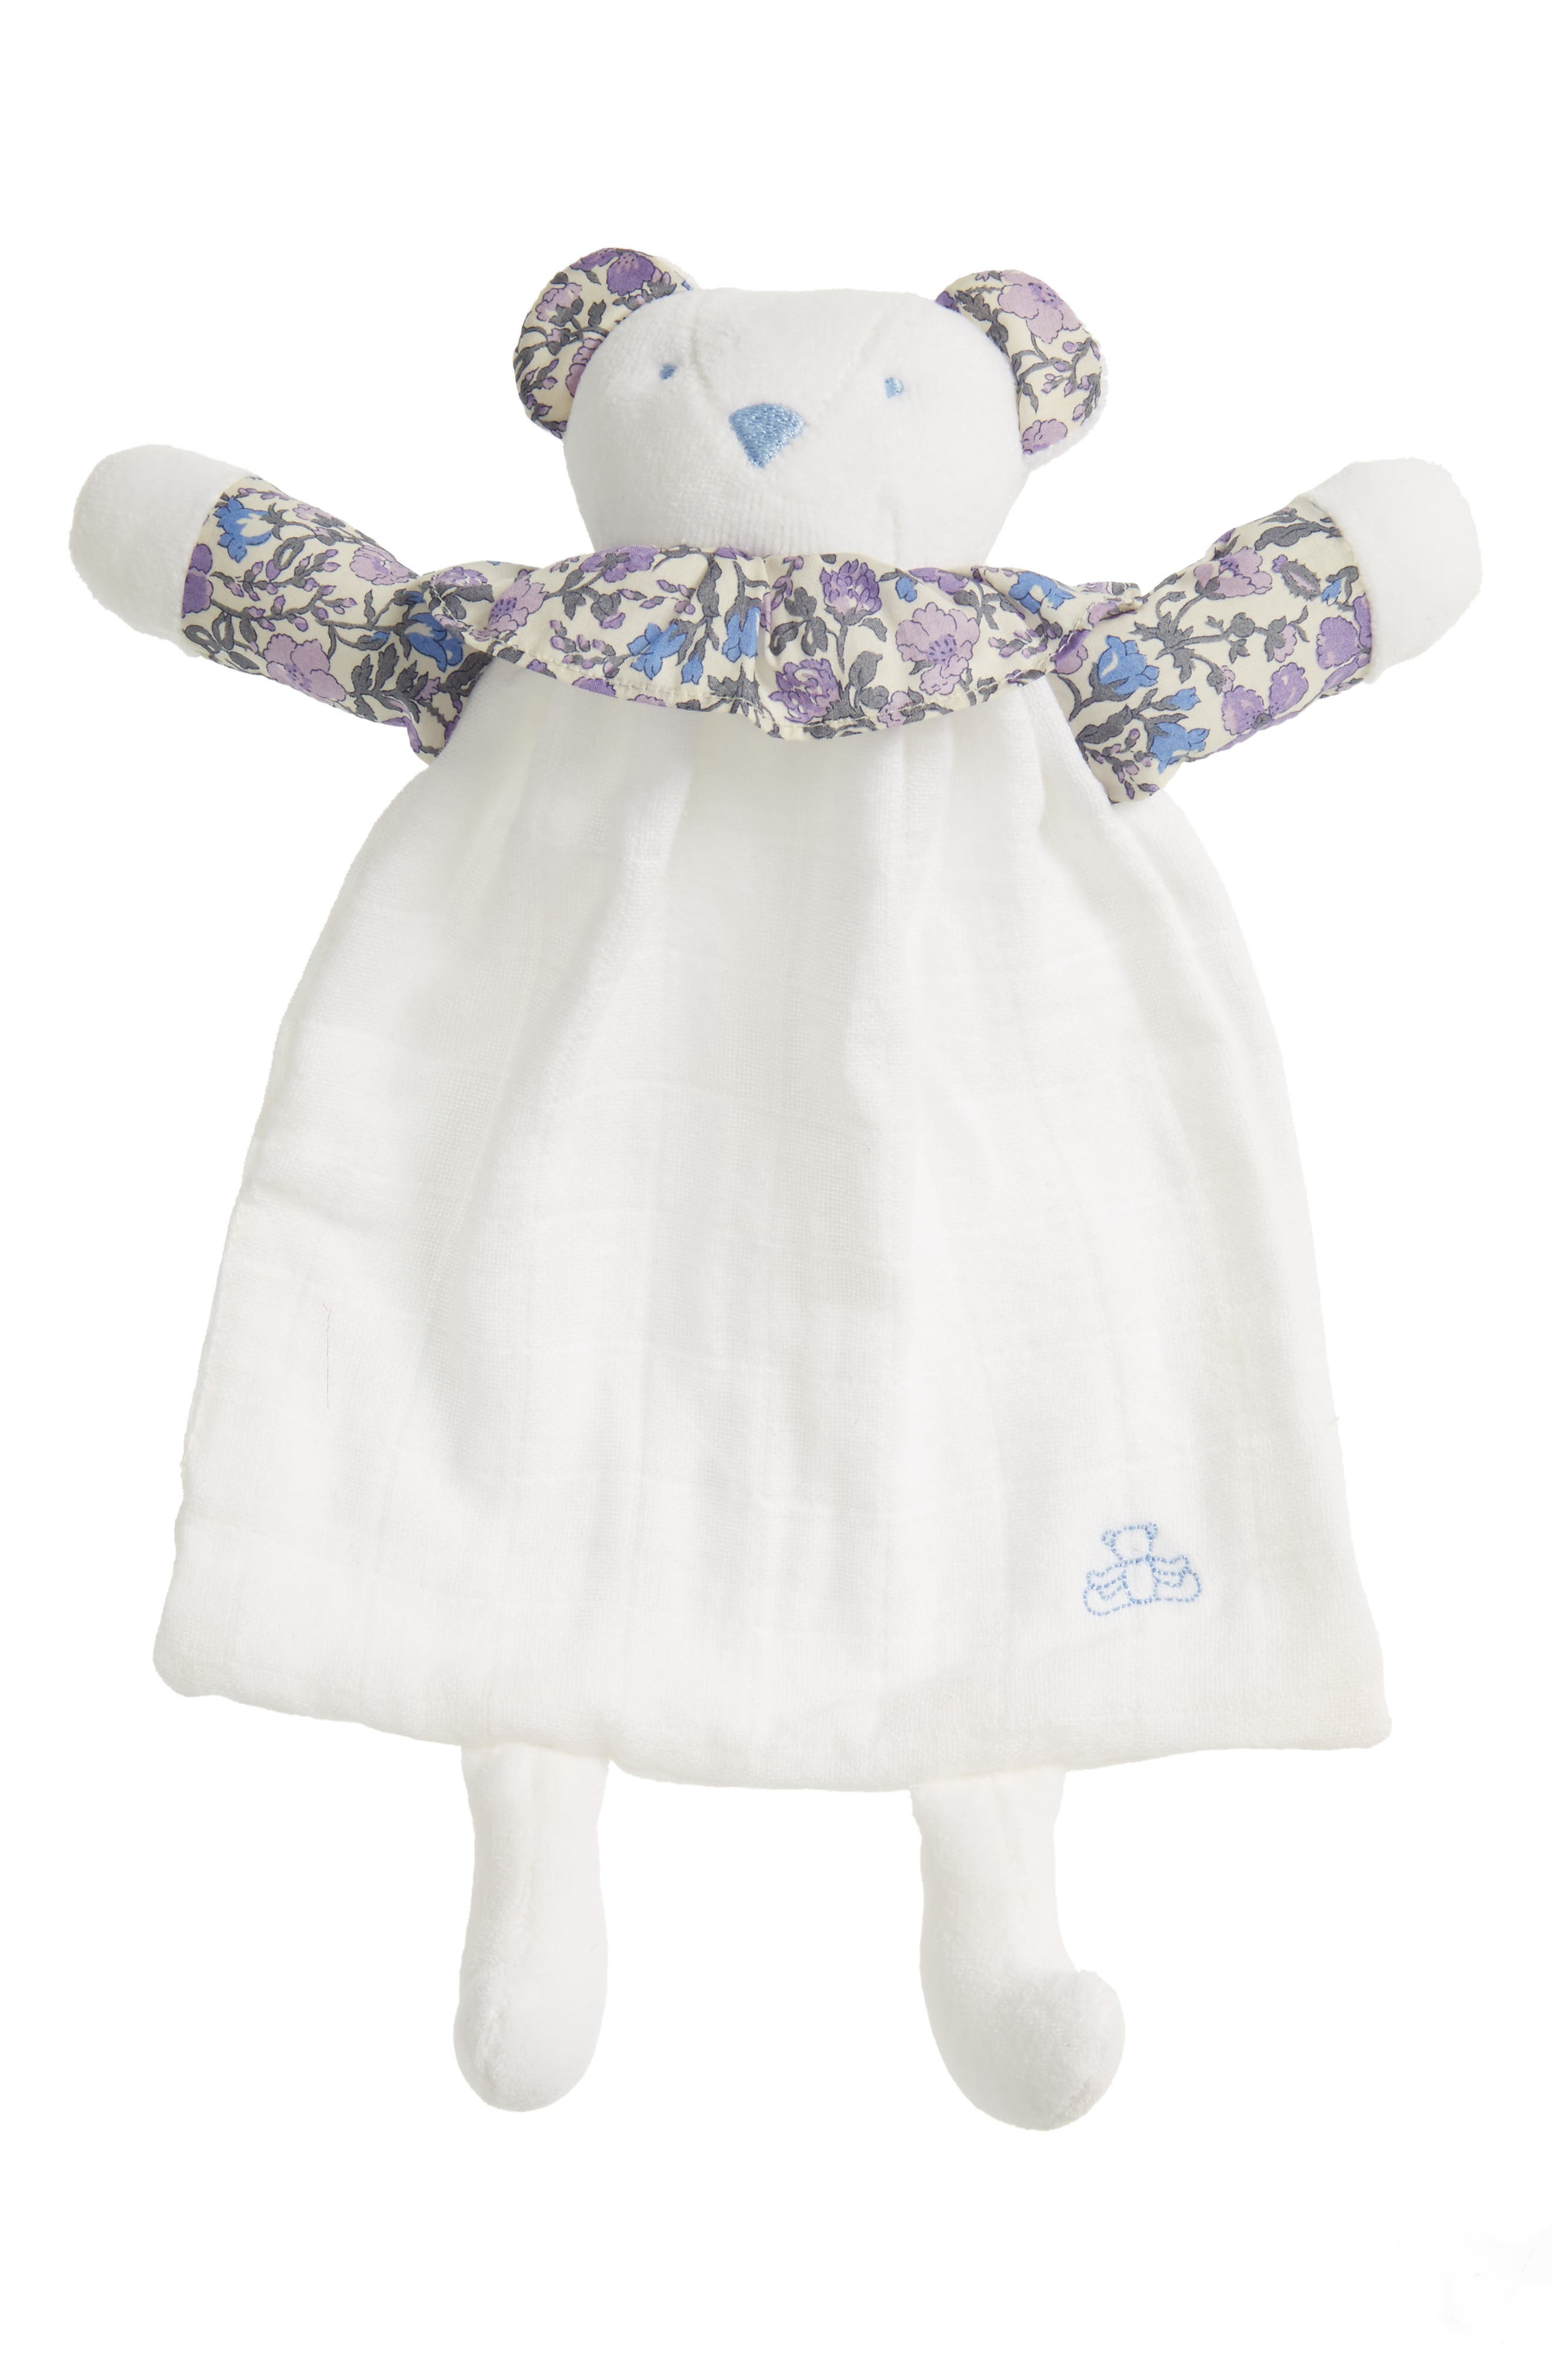 x Liberty of London Bear Lovey Toy,                         Main,                         color, Blue